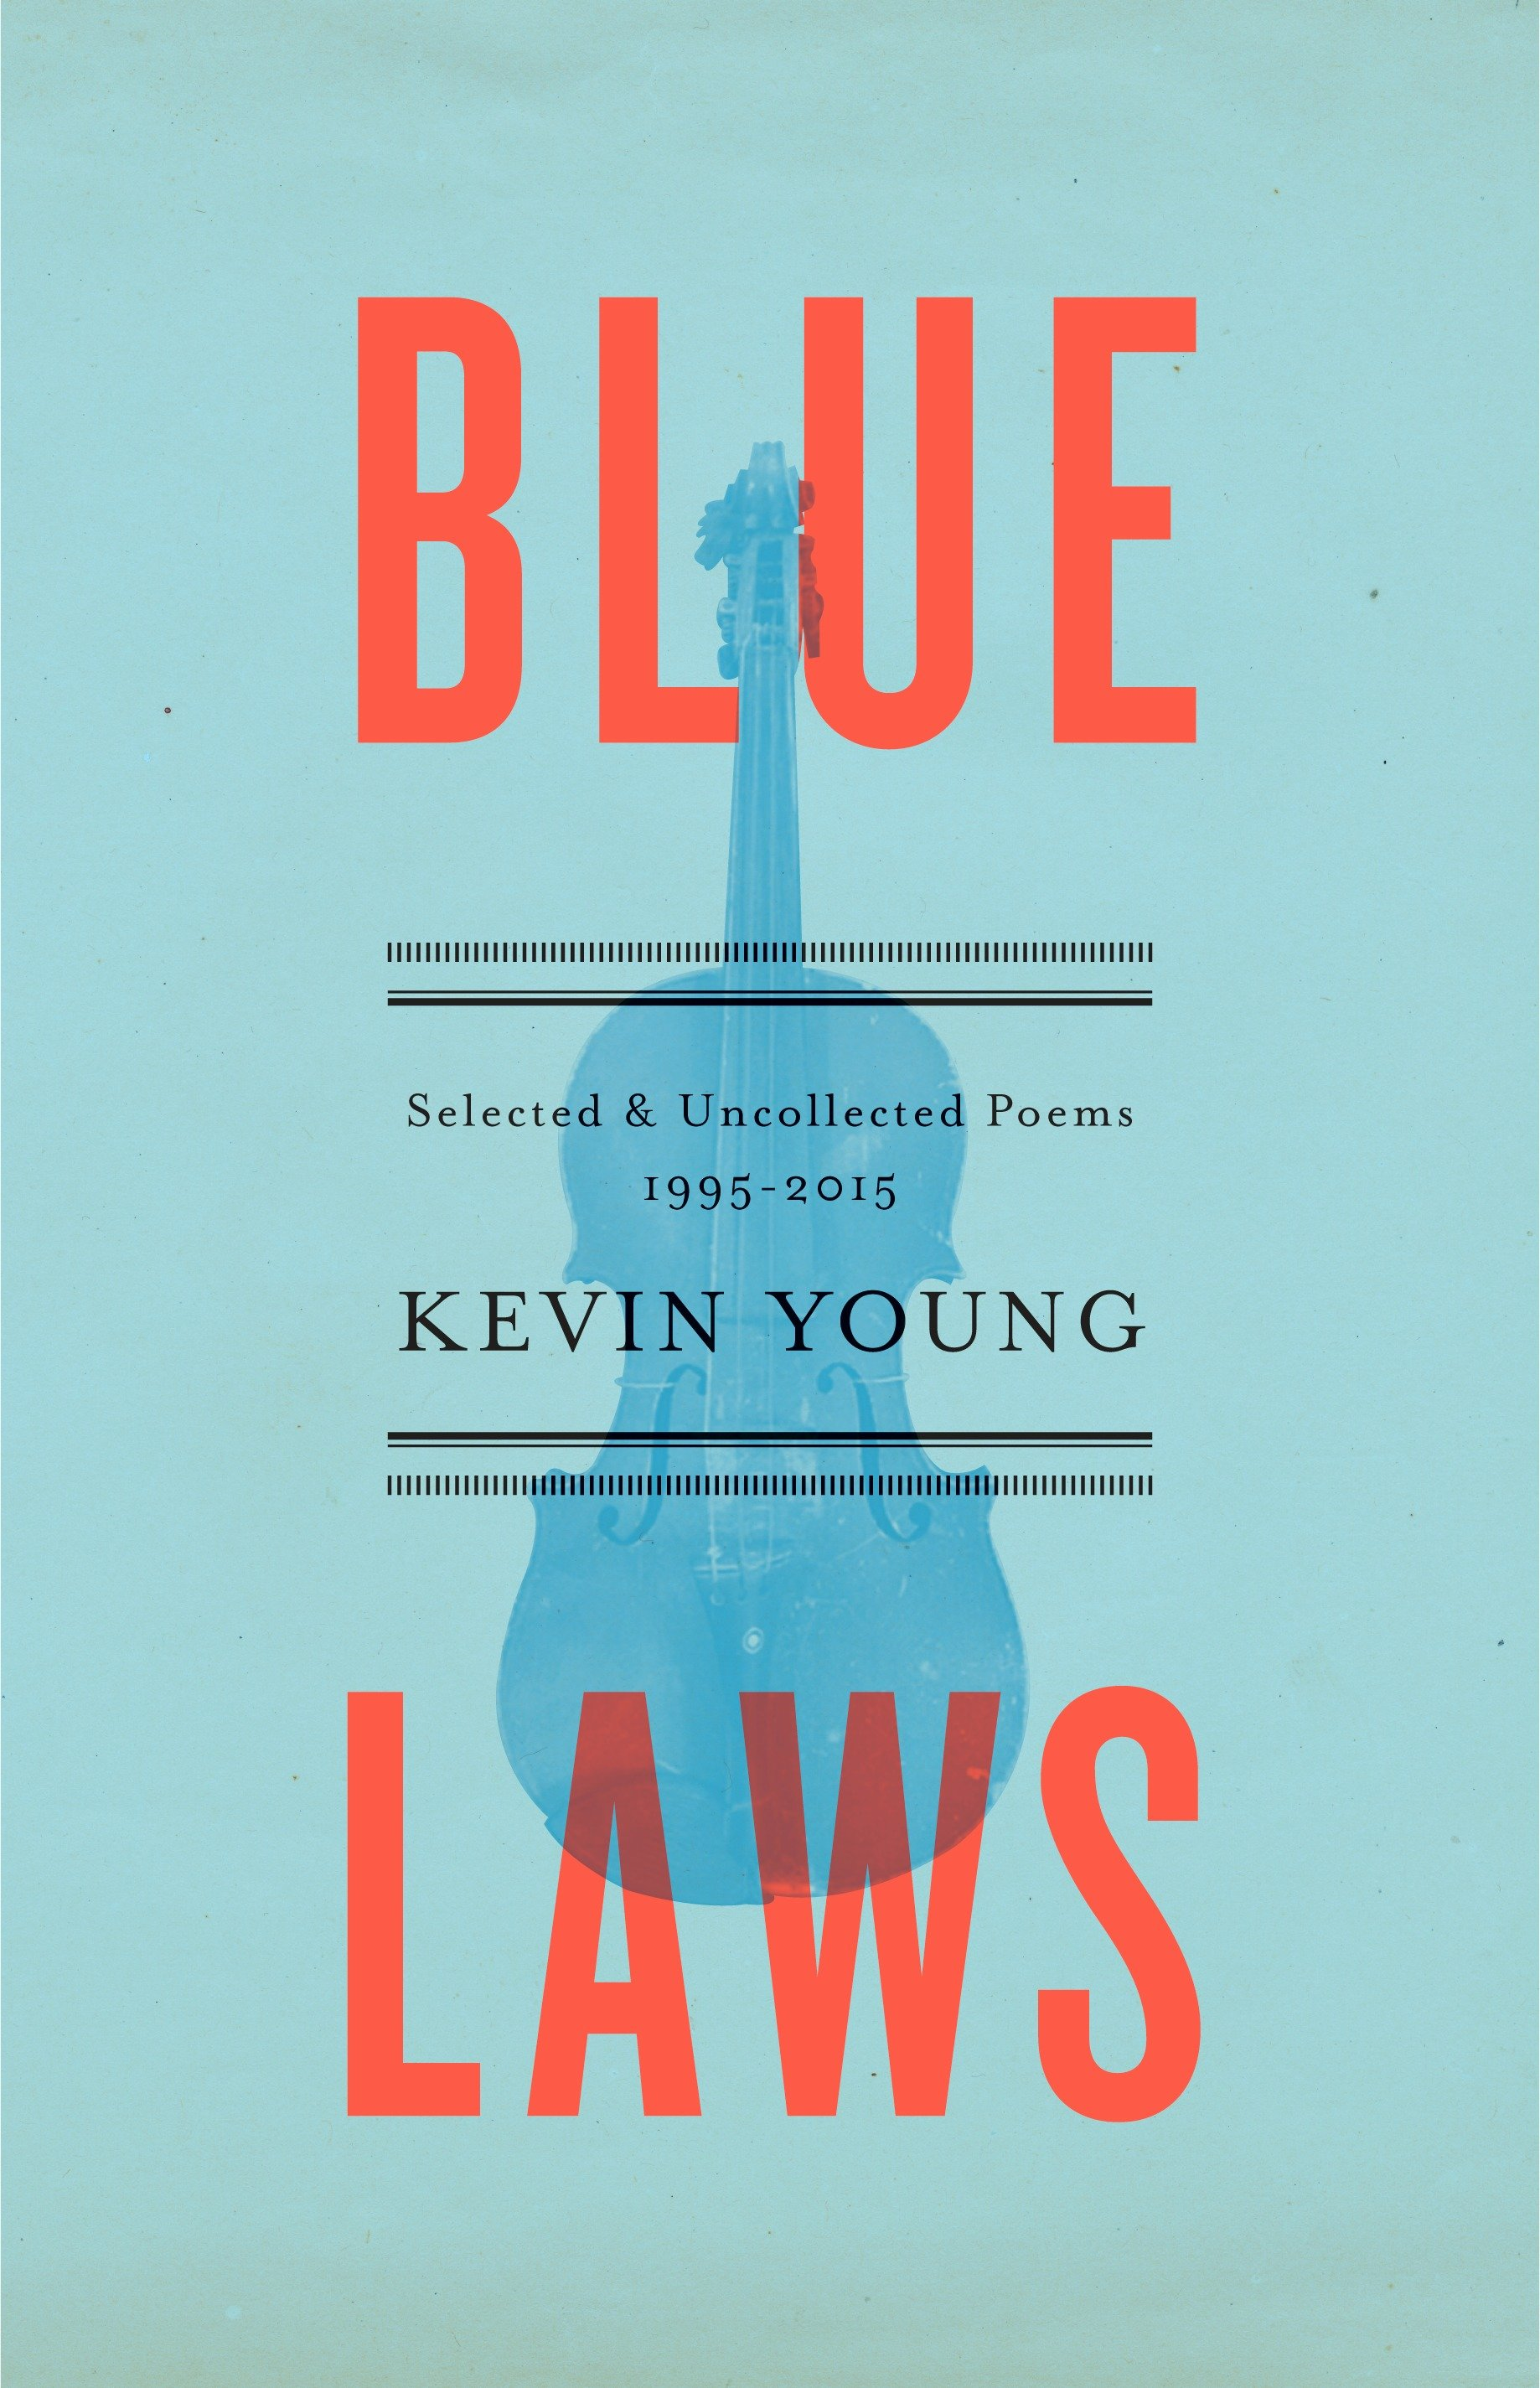 Blue Laws Selected and Uncollected Poems, 1995-2015